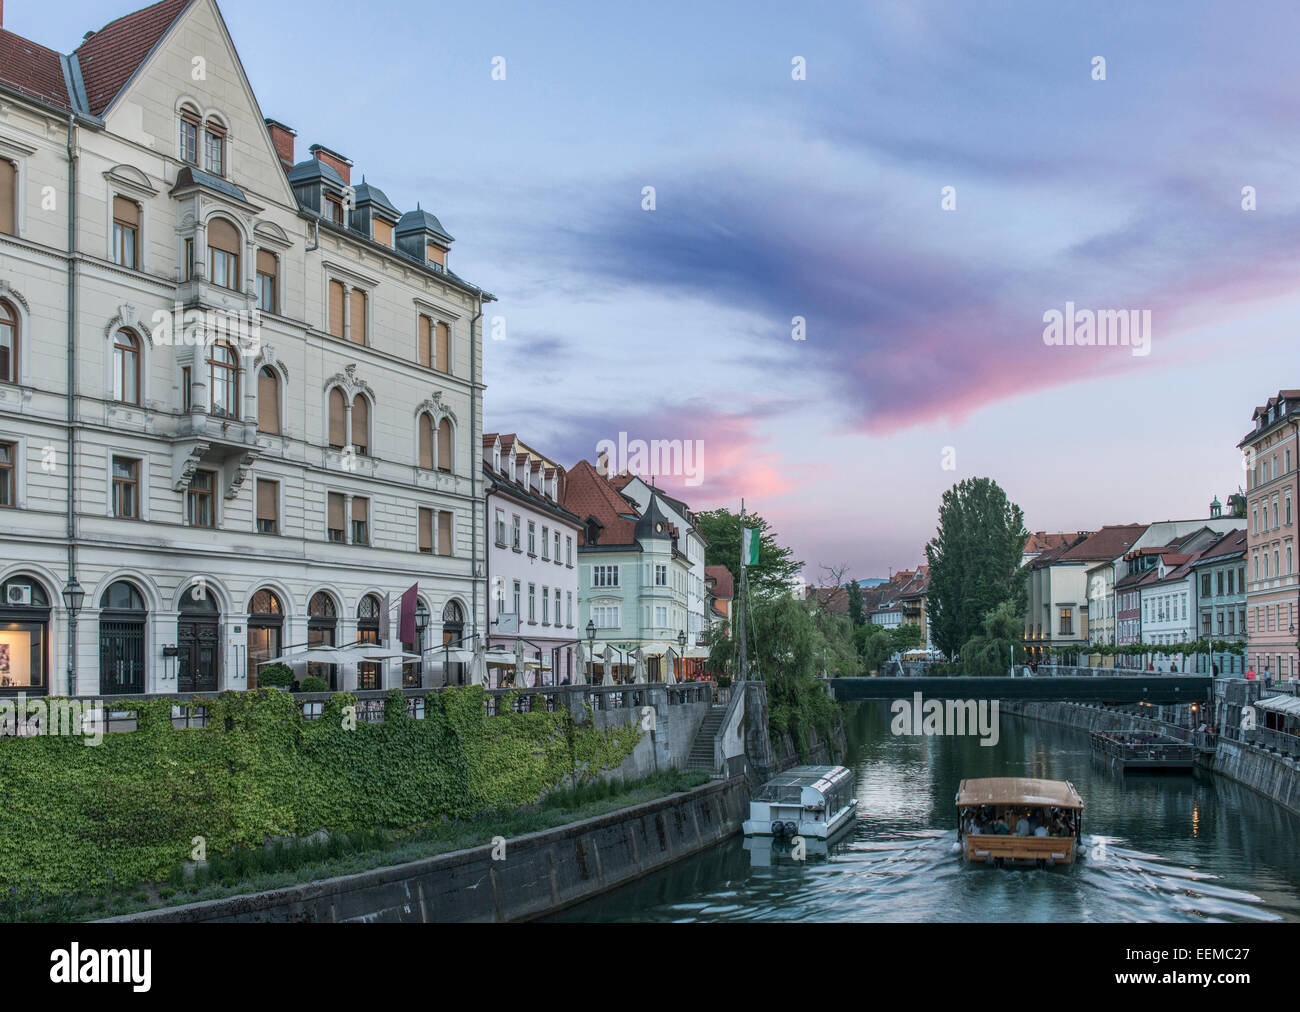 Buildings and pedestrian bridge over urban canal, Ljubljana, Central Slovenia, Slovenia - Stock Image